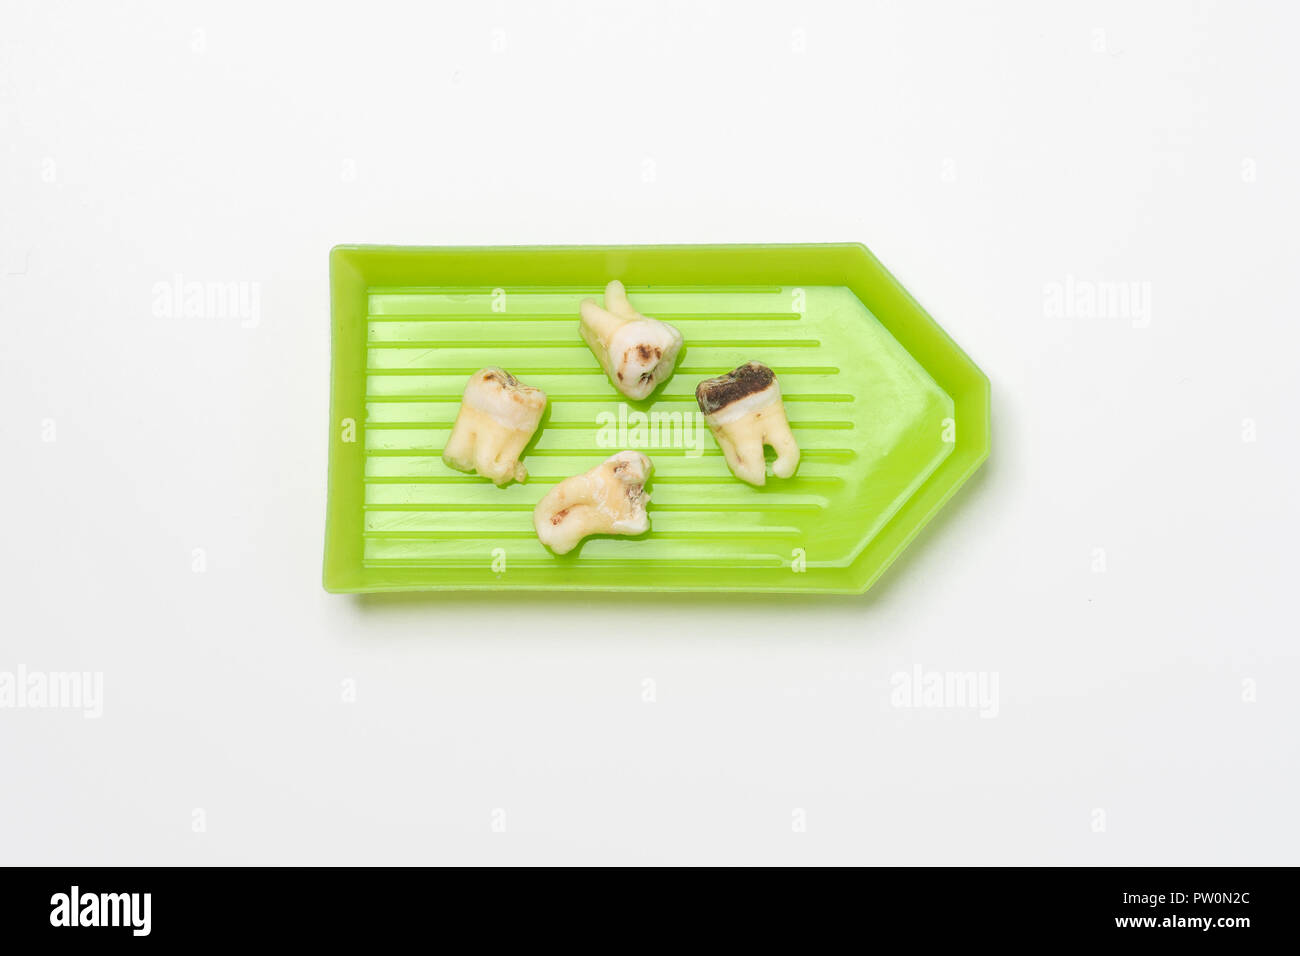 pulled out bad molars human teeth close up on white background - Stock Image